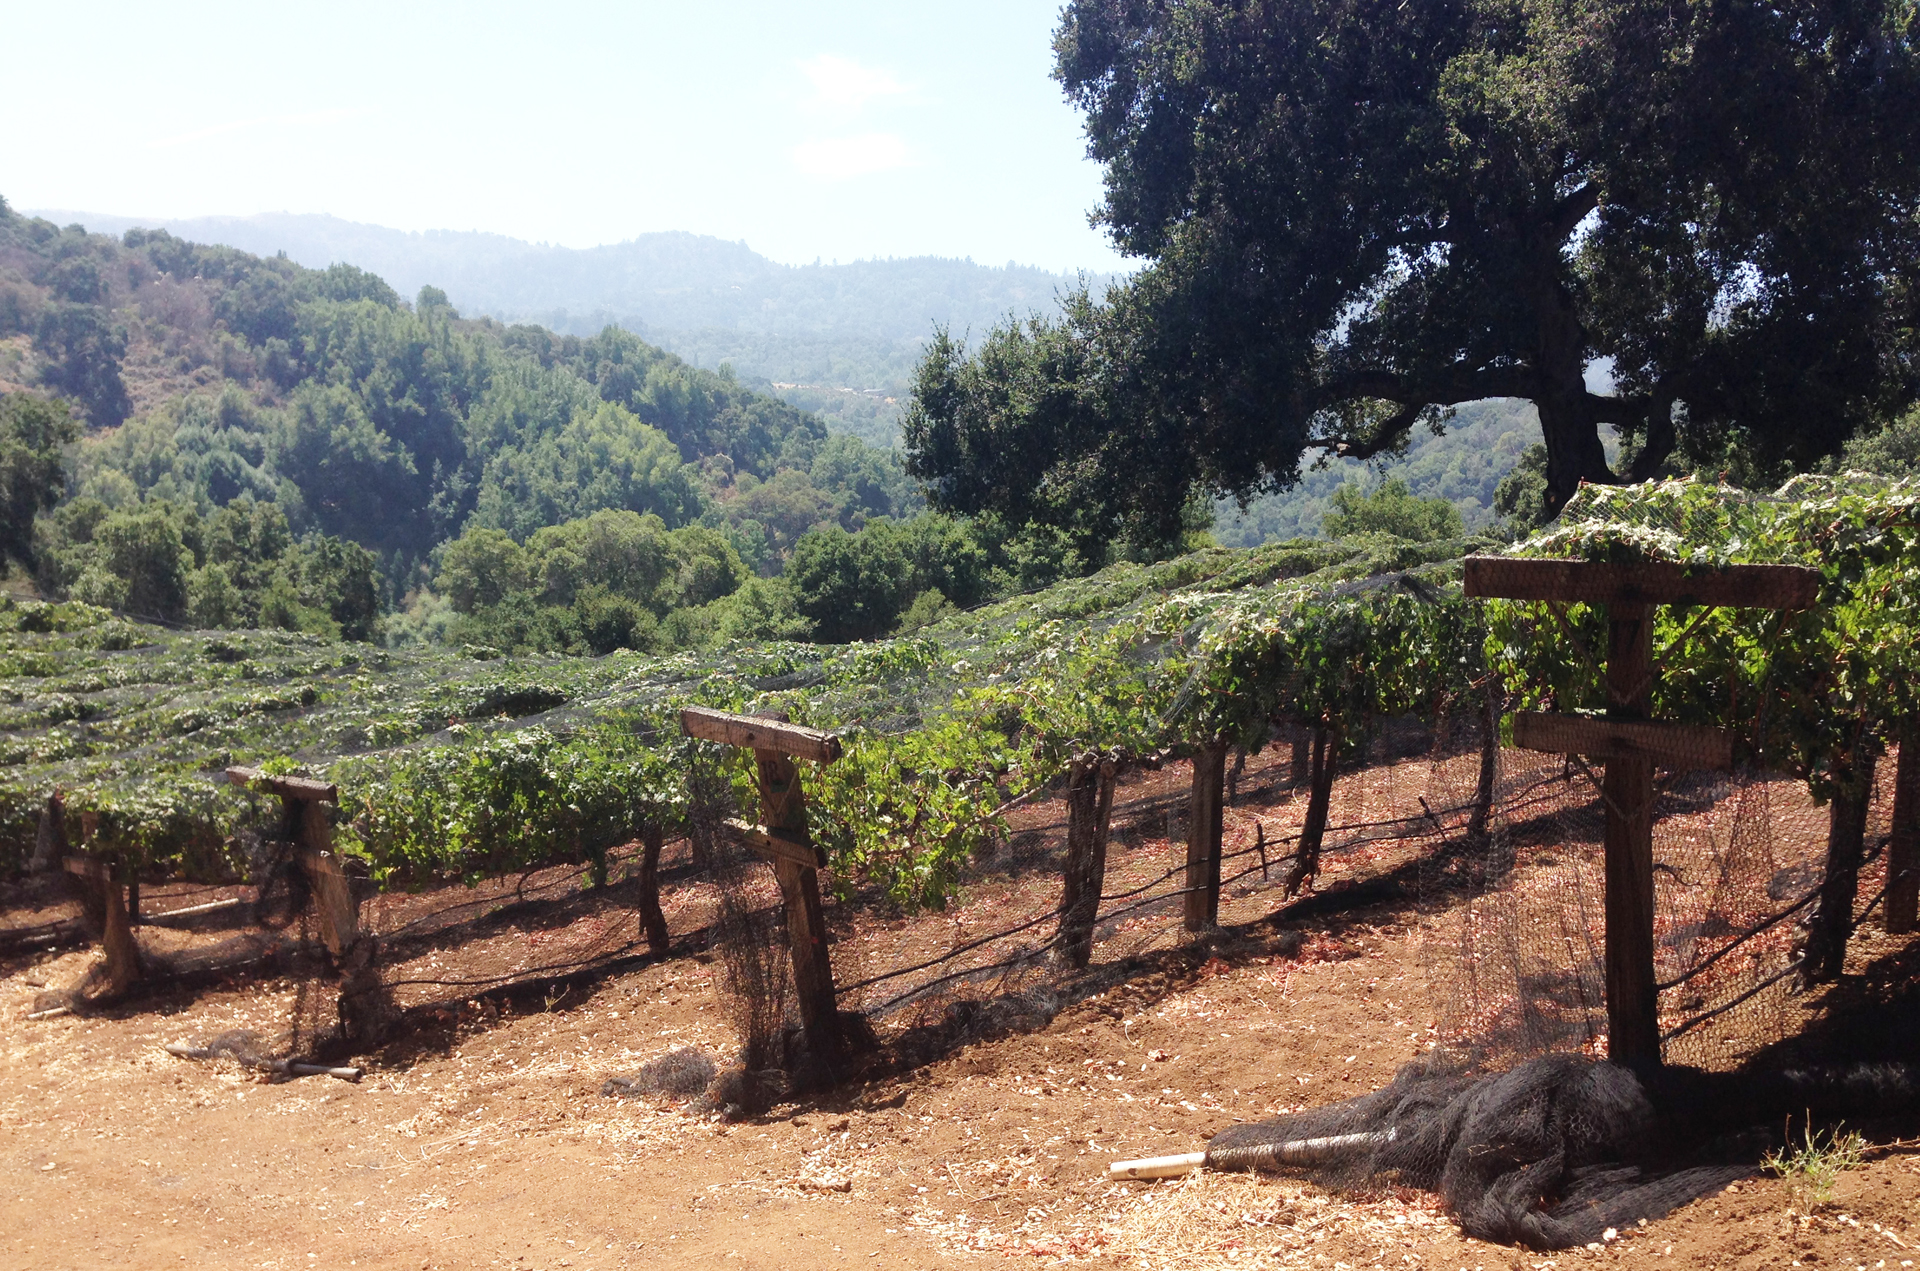 This vineyard in Portola Valley belongs to a well-known billionaire, who like most home vineyard owners, puts up nets to protect grapes from ravaging birds.  Such owners guard their privacy when it comes to their wine activities.